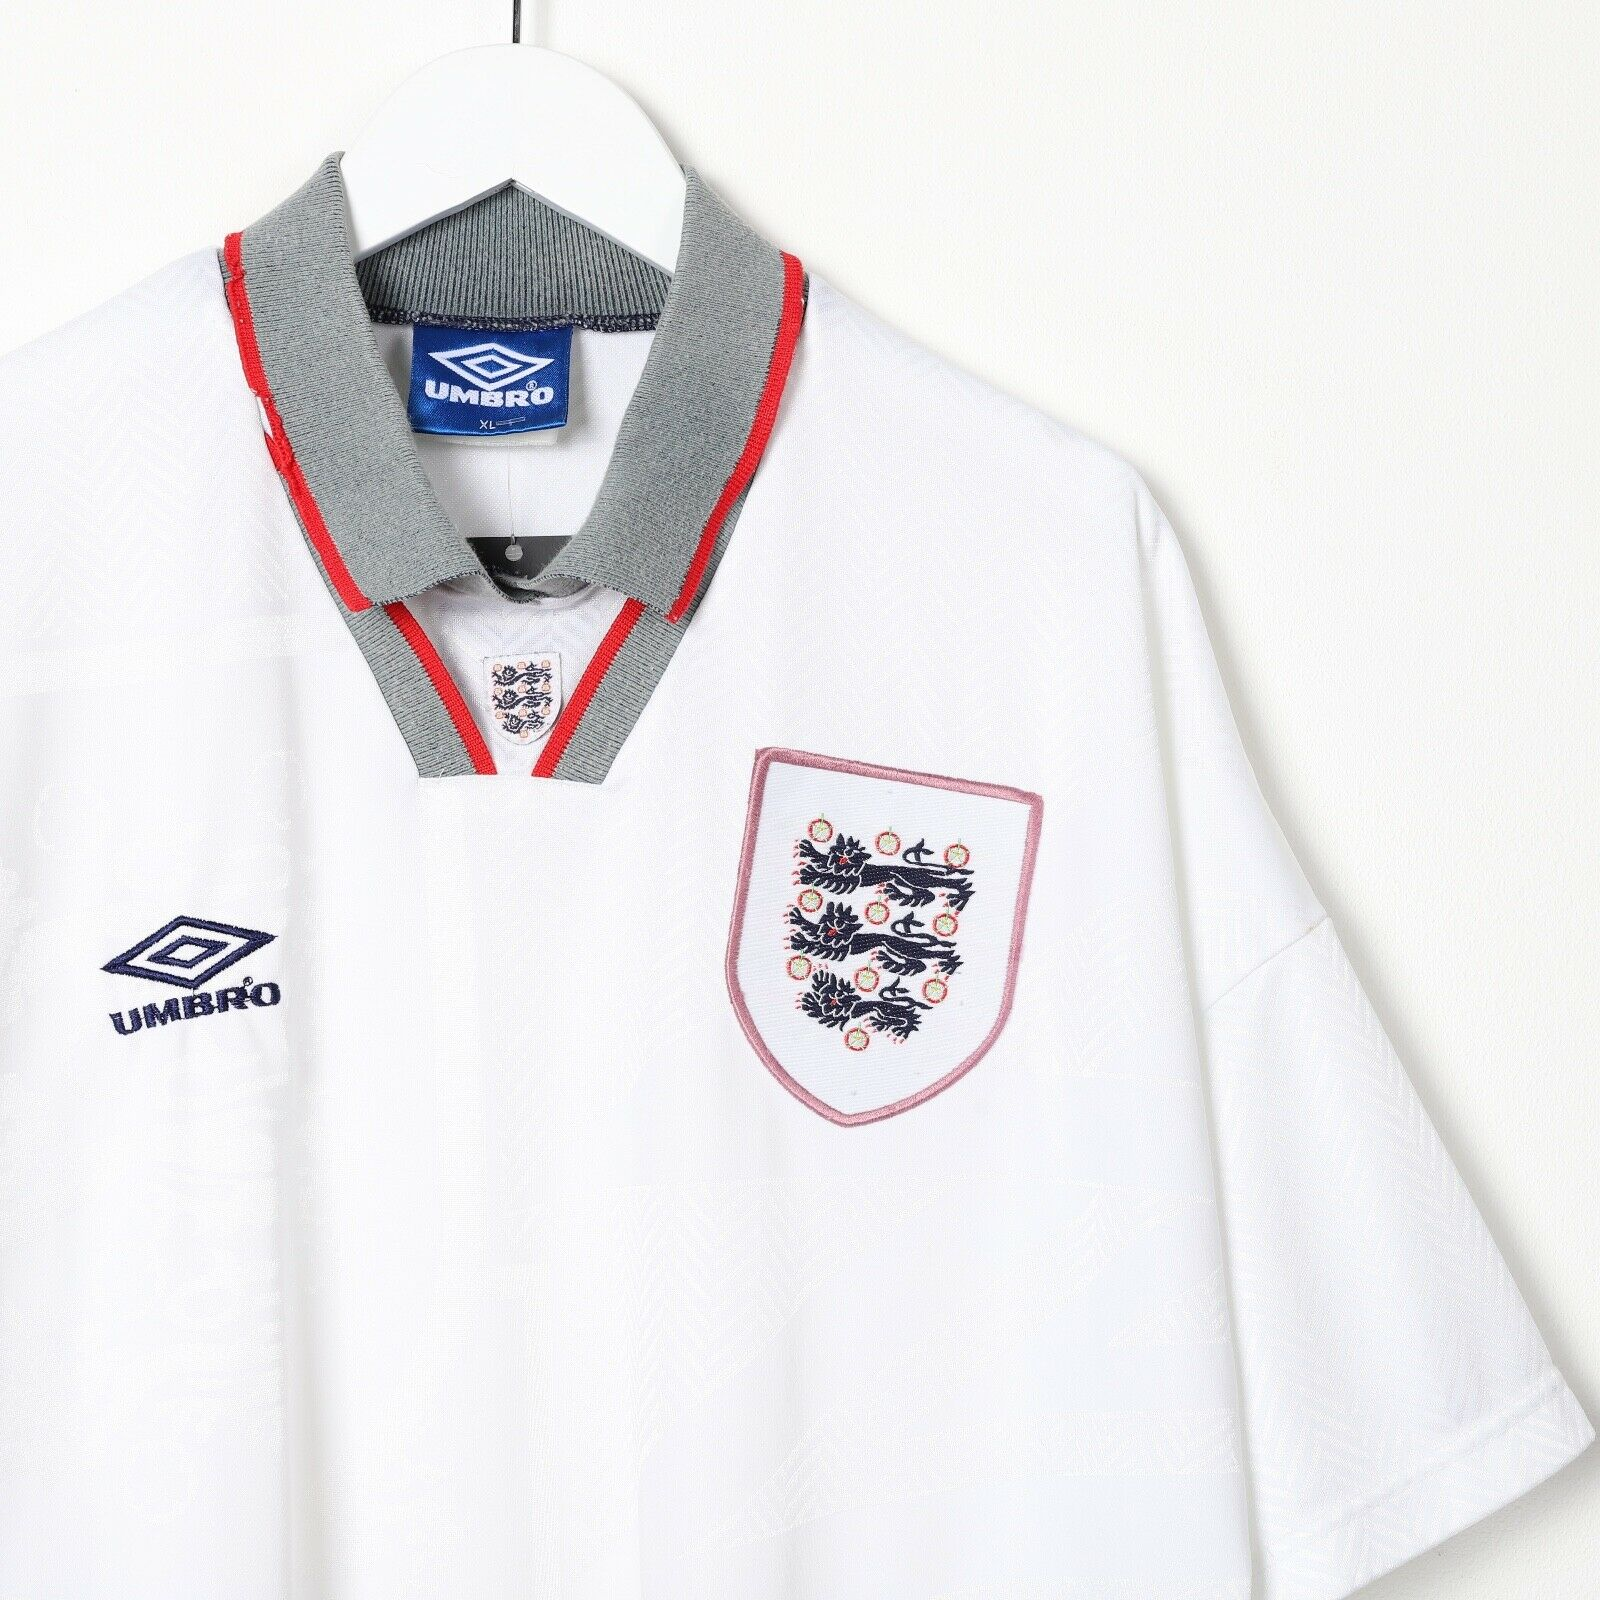 Vintage 90s UMBRO England Replica Football Shirt T shirt Tee White XL